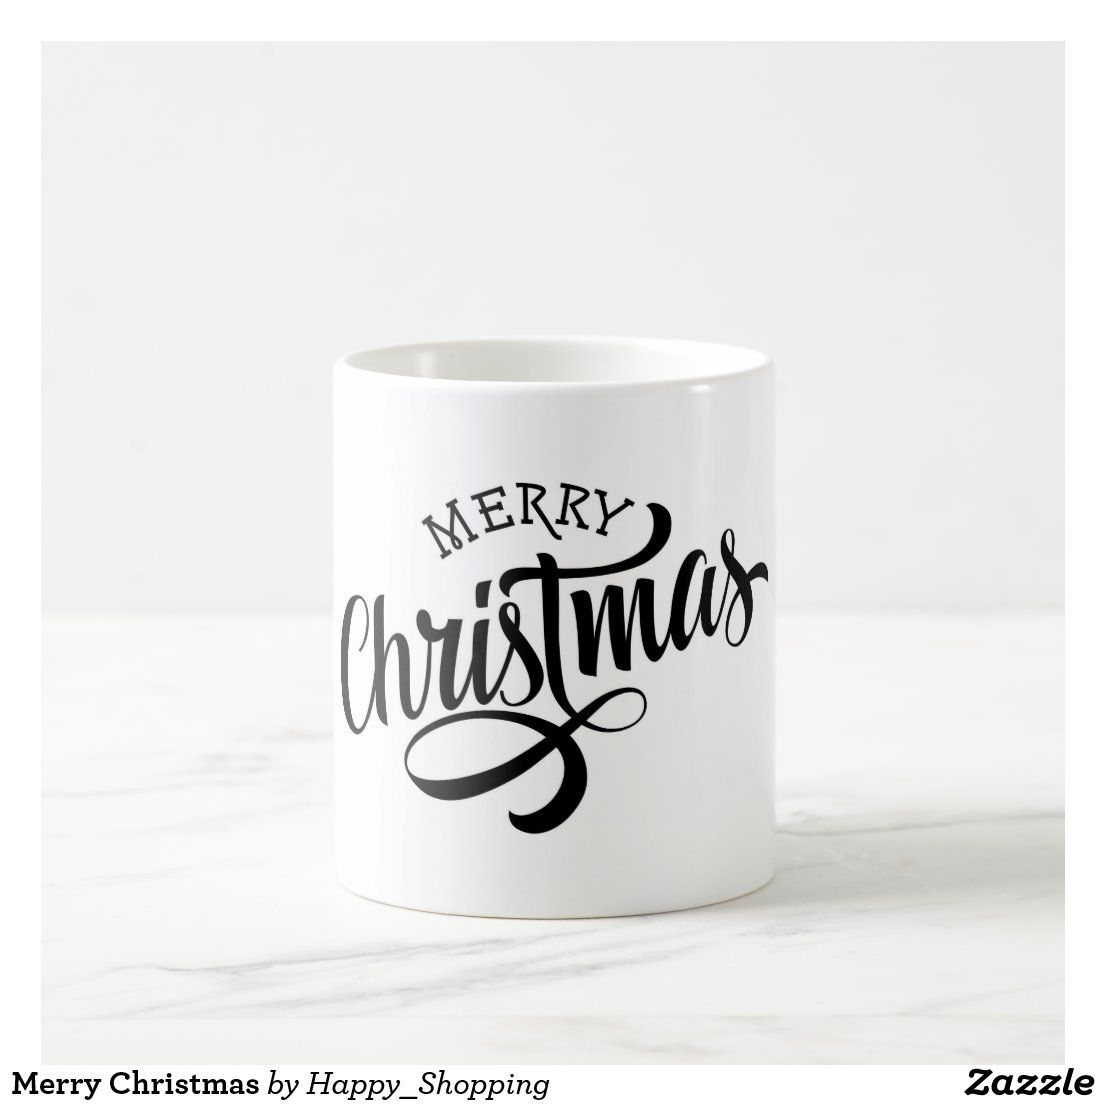 Merry Christmas Coffee Mug | Zazzle.com